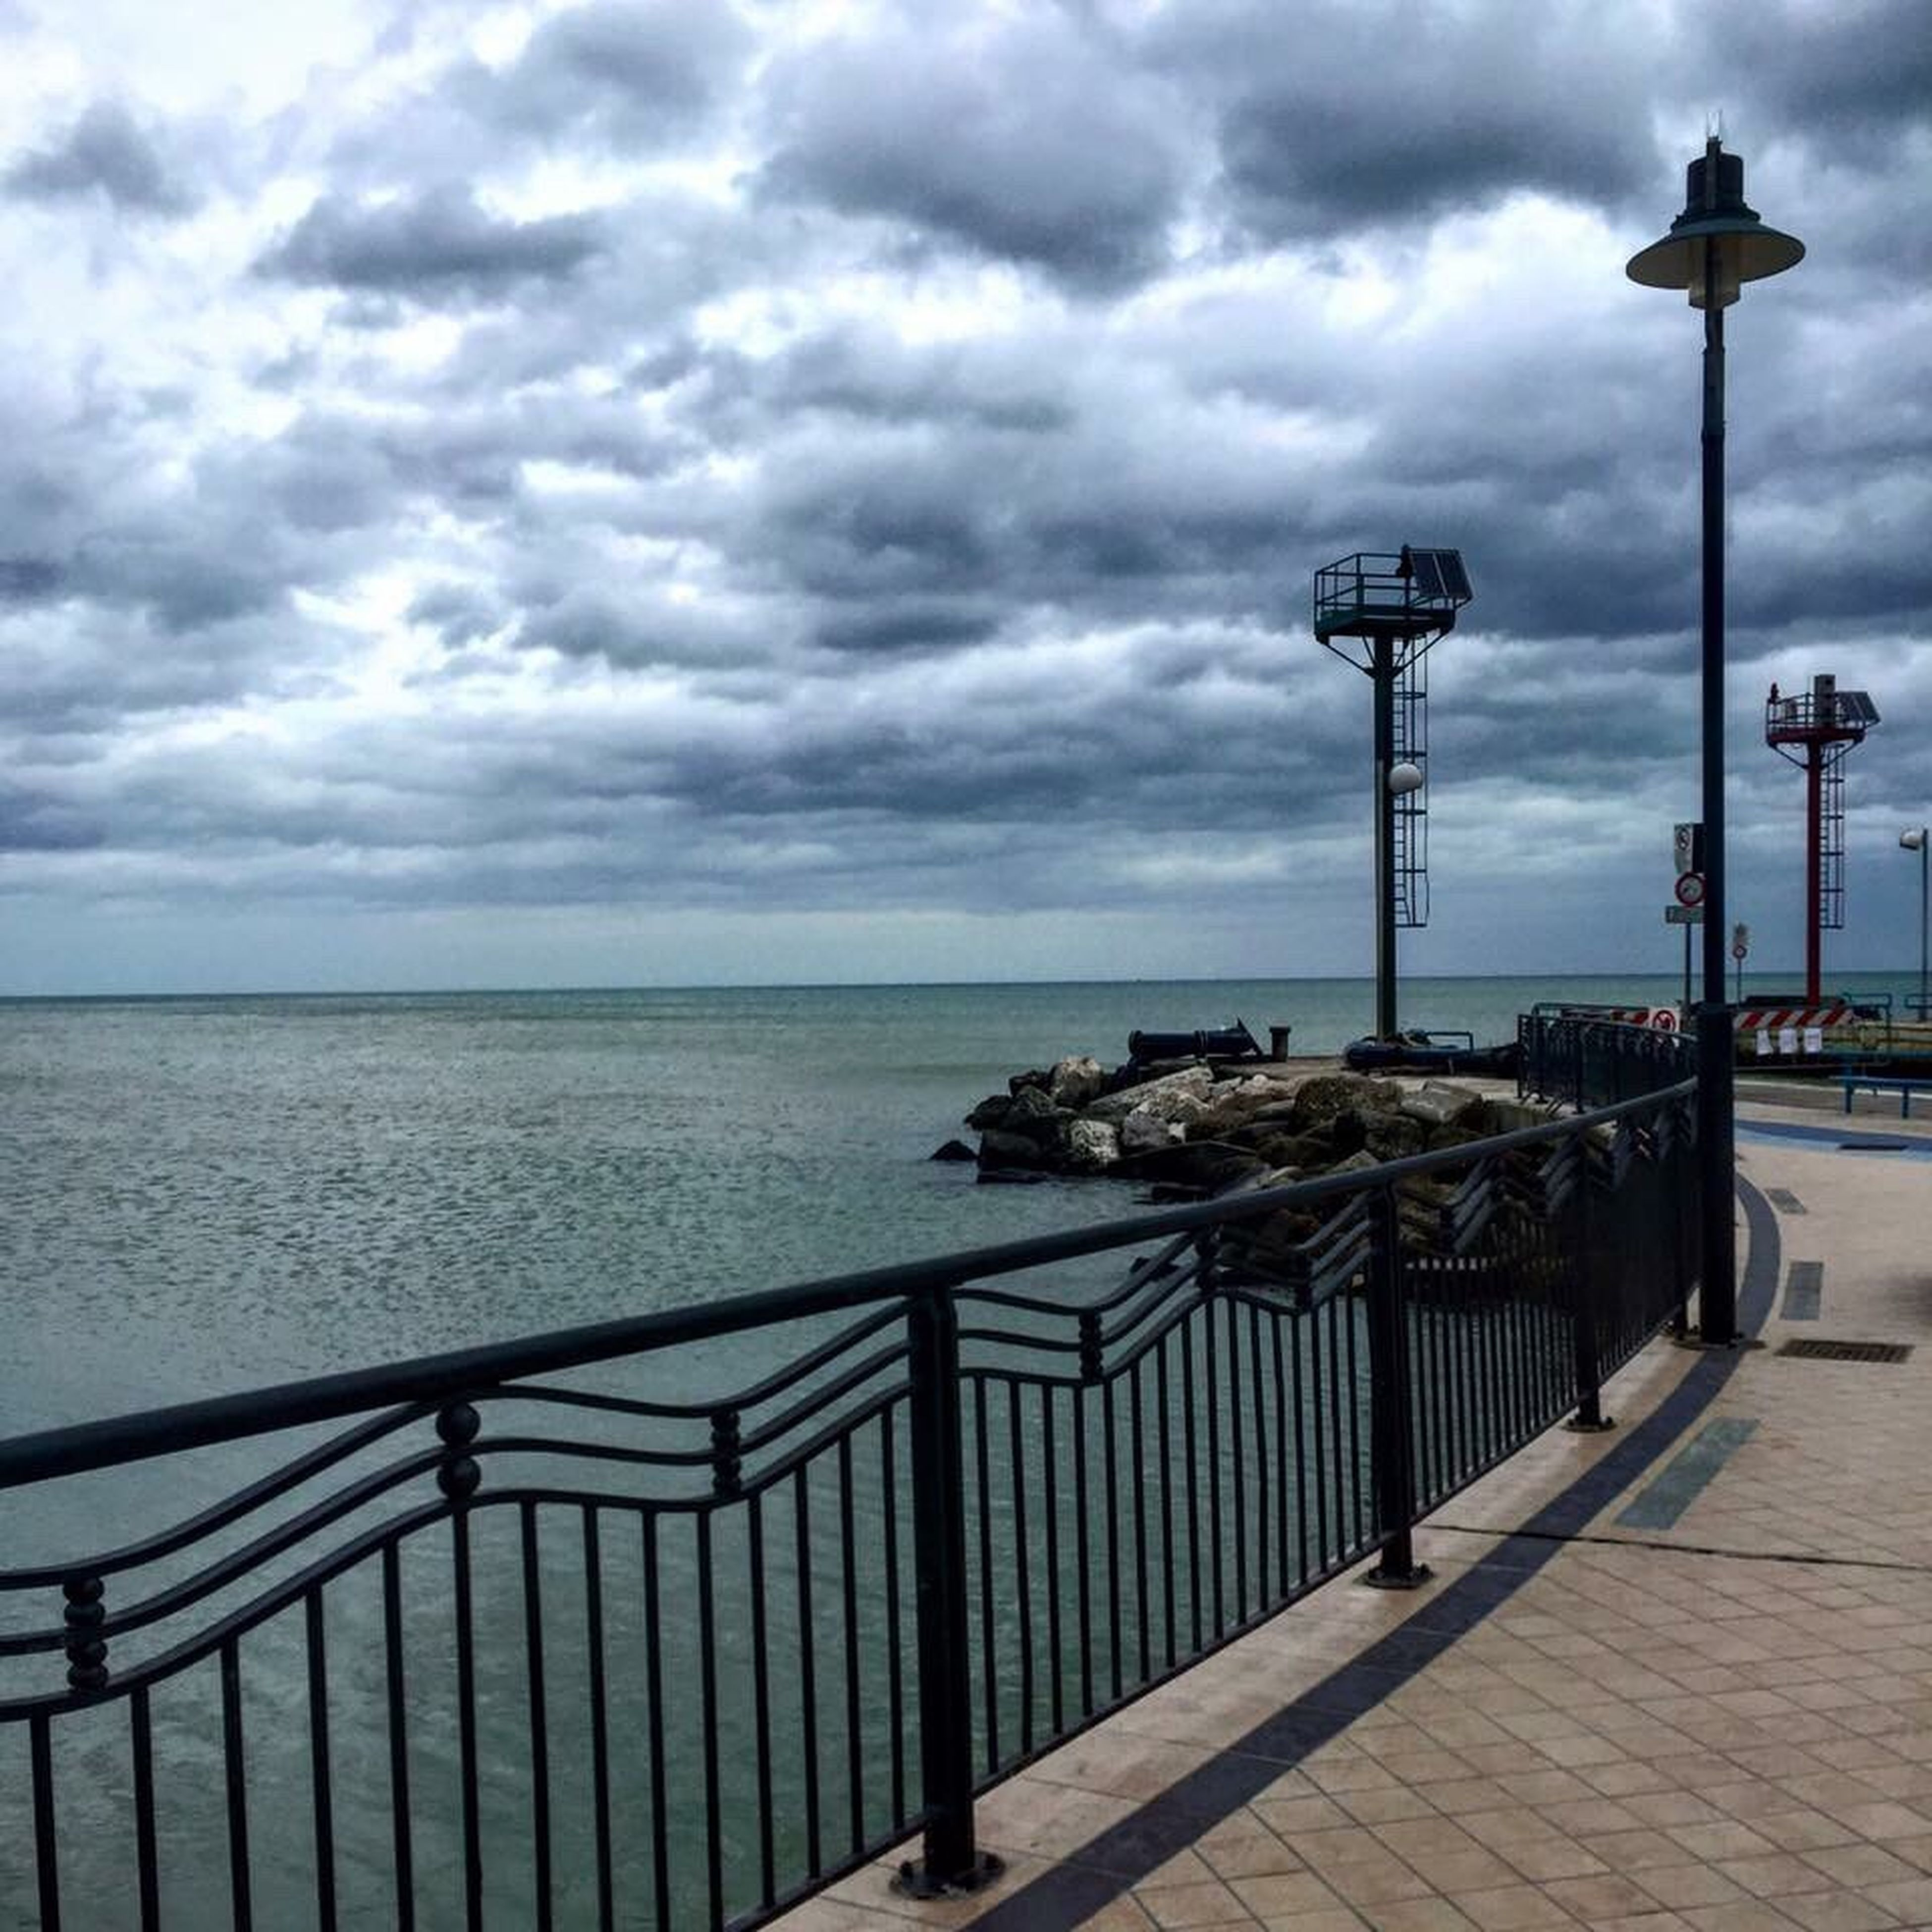 sea, horizon over water, sky, water, cloud - sky, cloudy, railing, street light, scenics, tranquility, tranquil scene, beach, pier, cloud, beauty in nature, nature, weather, shore, overcast, lighting equipment